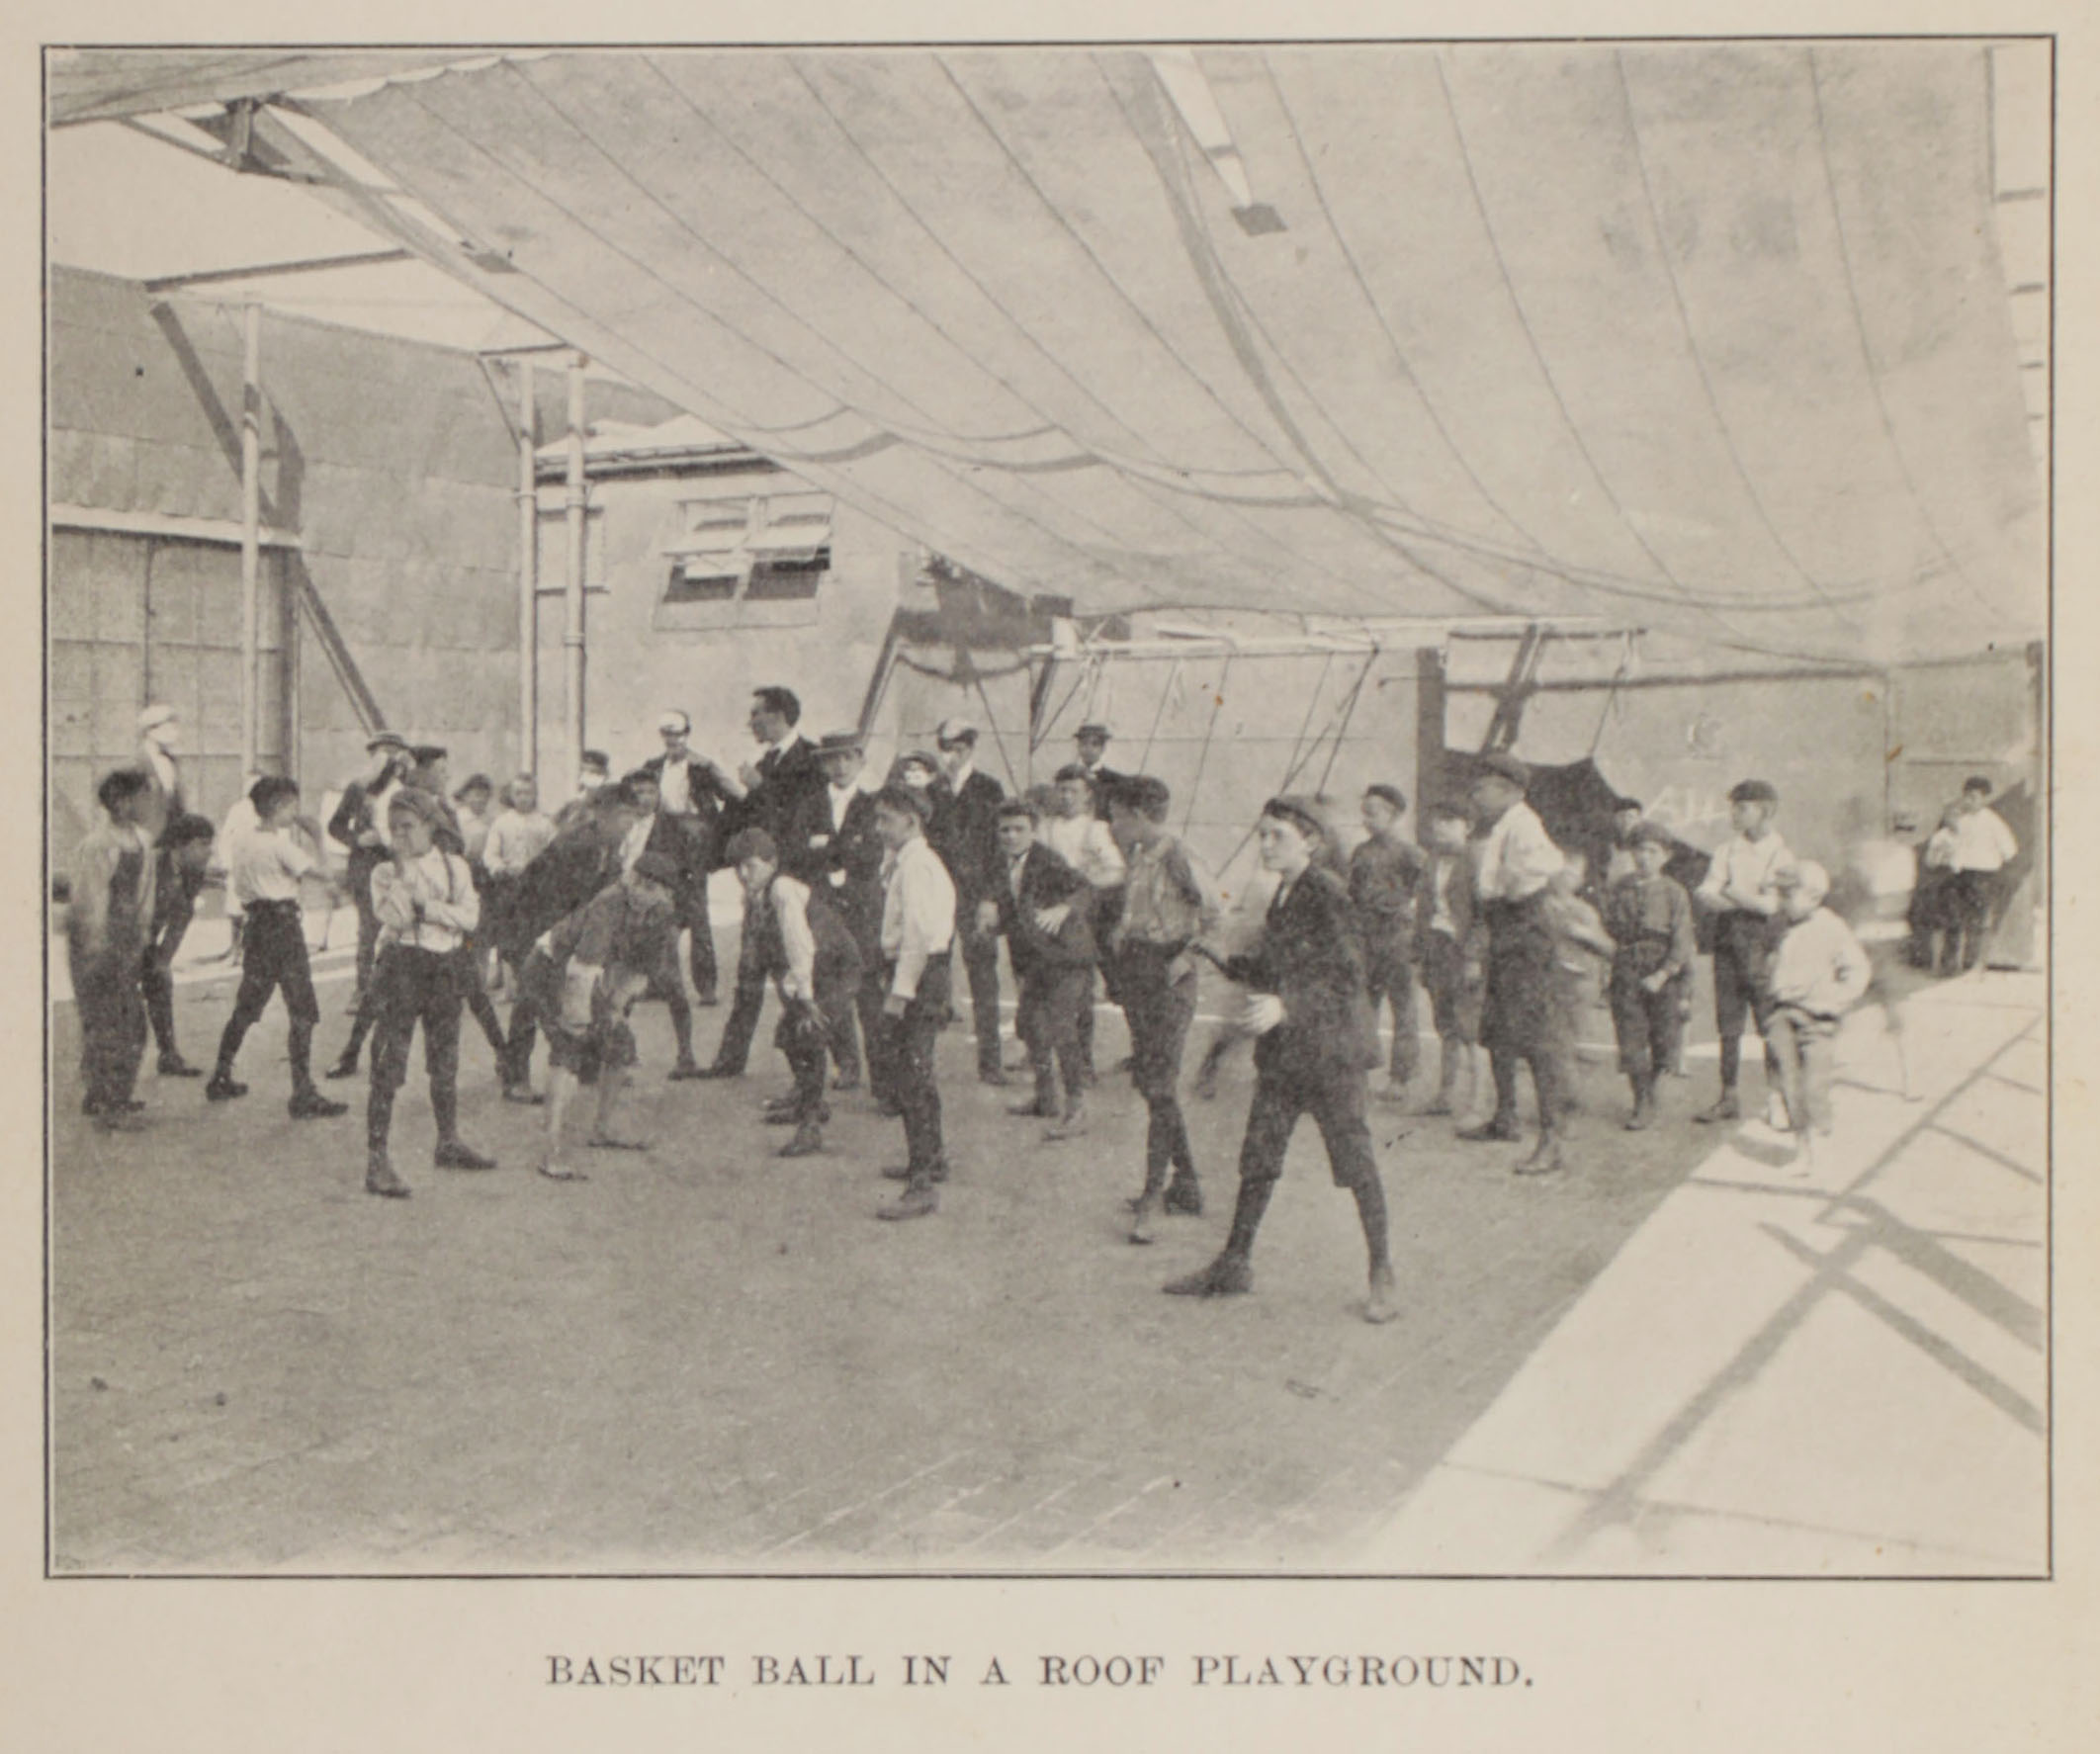 Basket Ball in a Roof Playground,  Report on the vacation schools and play grounds , 1899. Board of Education Collection, NYC Municipal Archives.